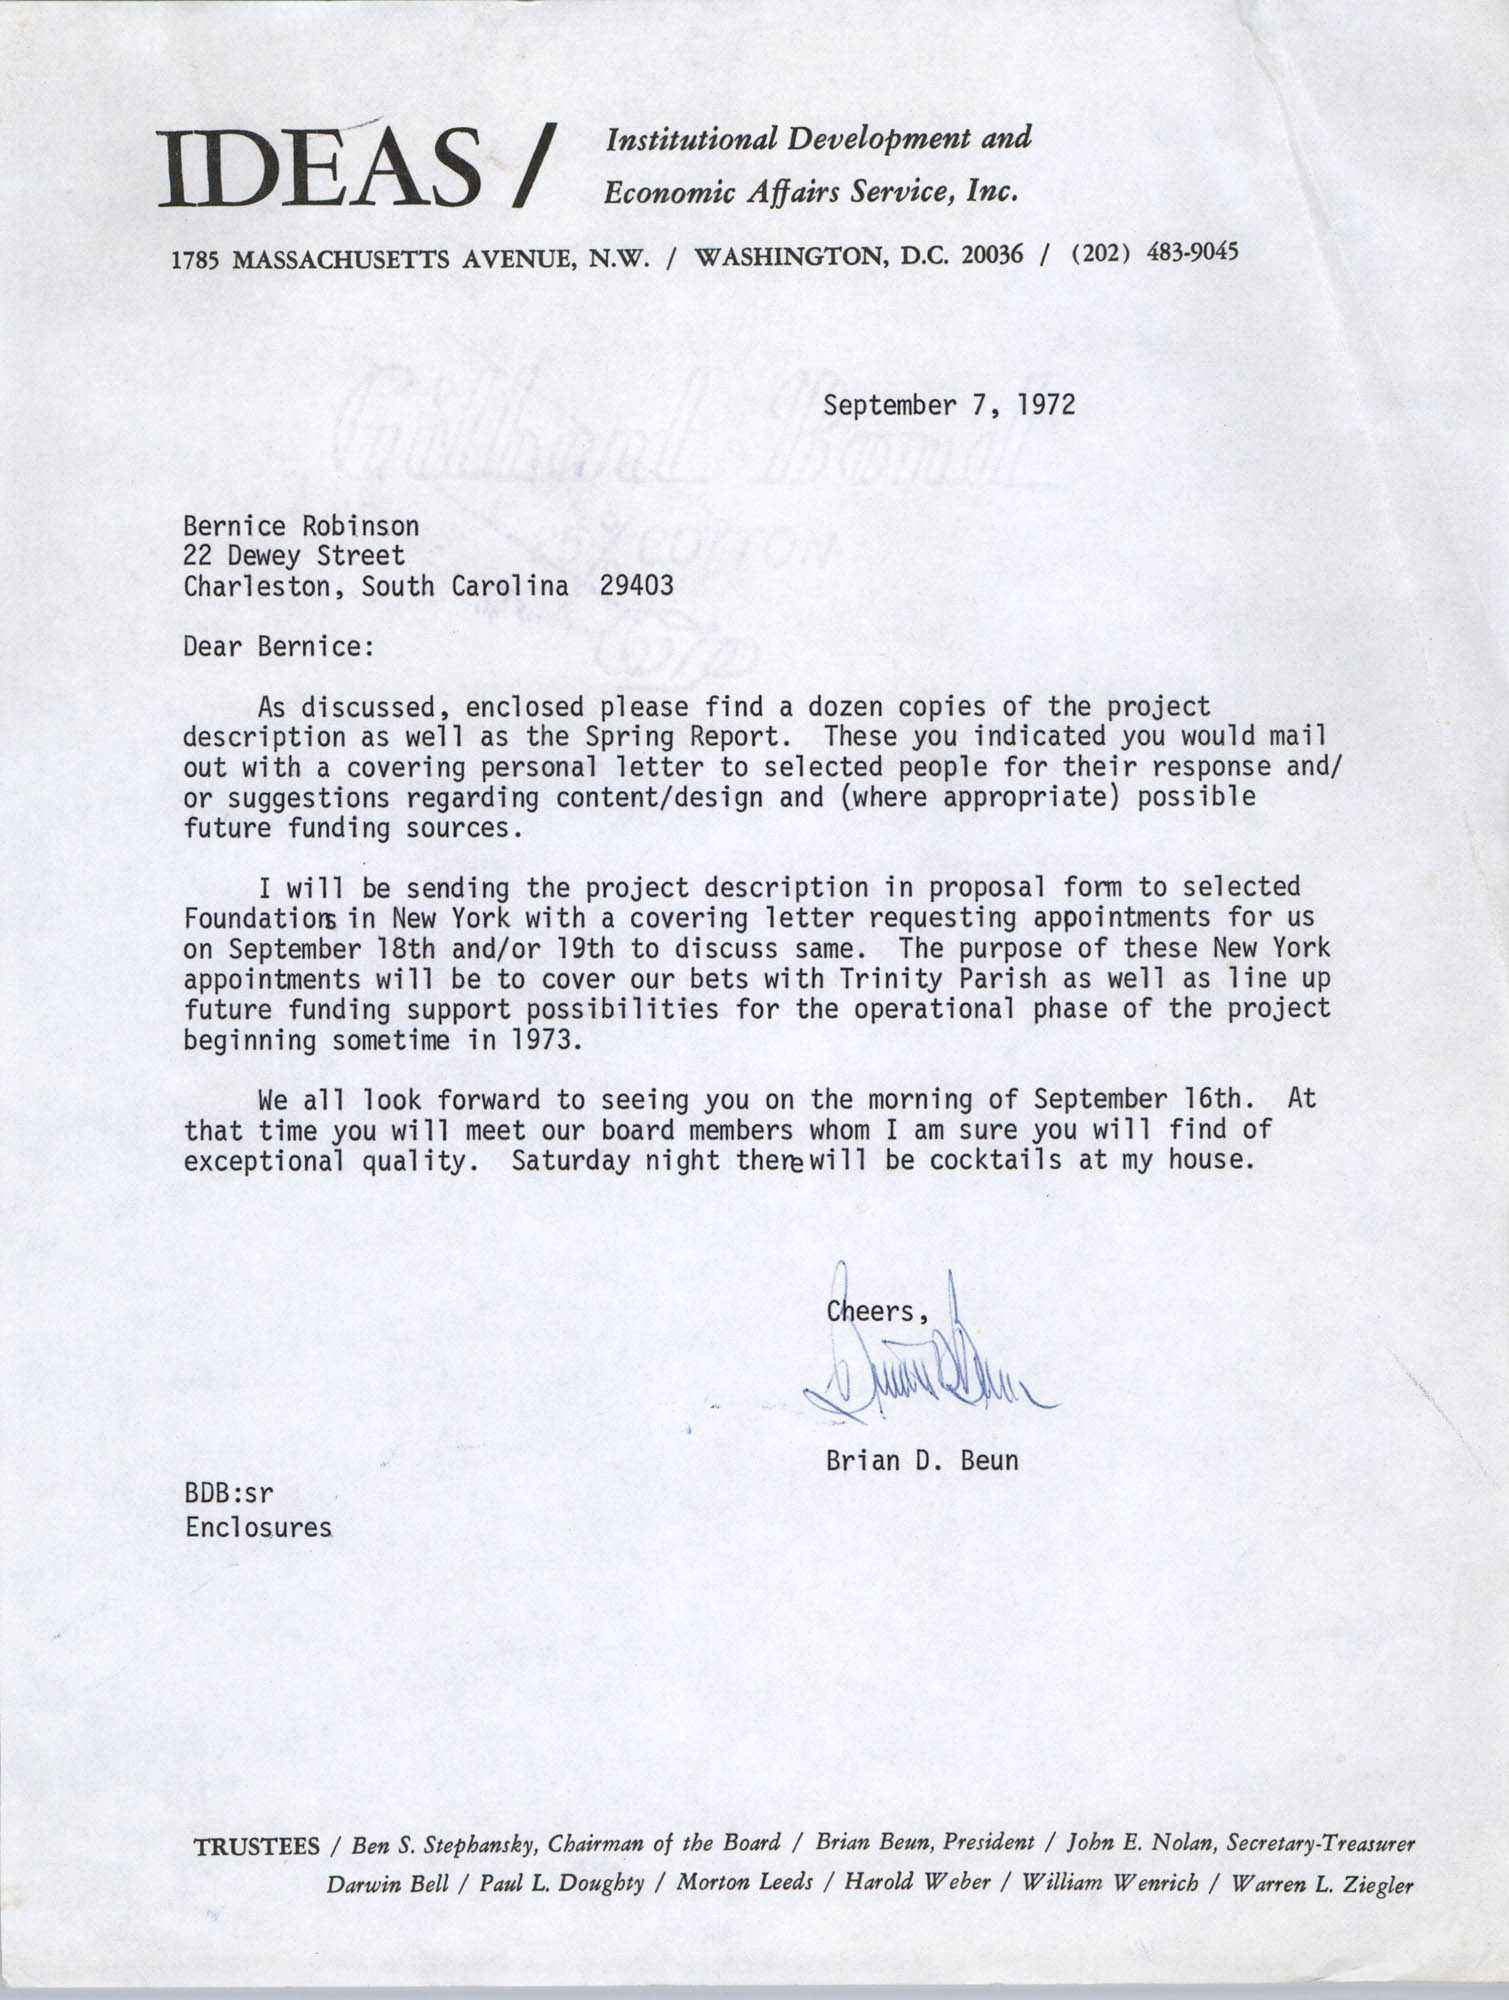 Letter from Brian Beun to Bernice Robinson, September 7, 1972